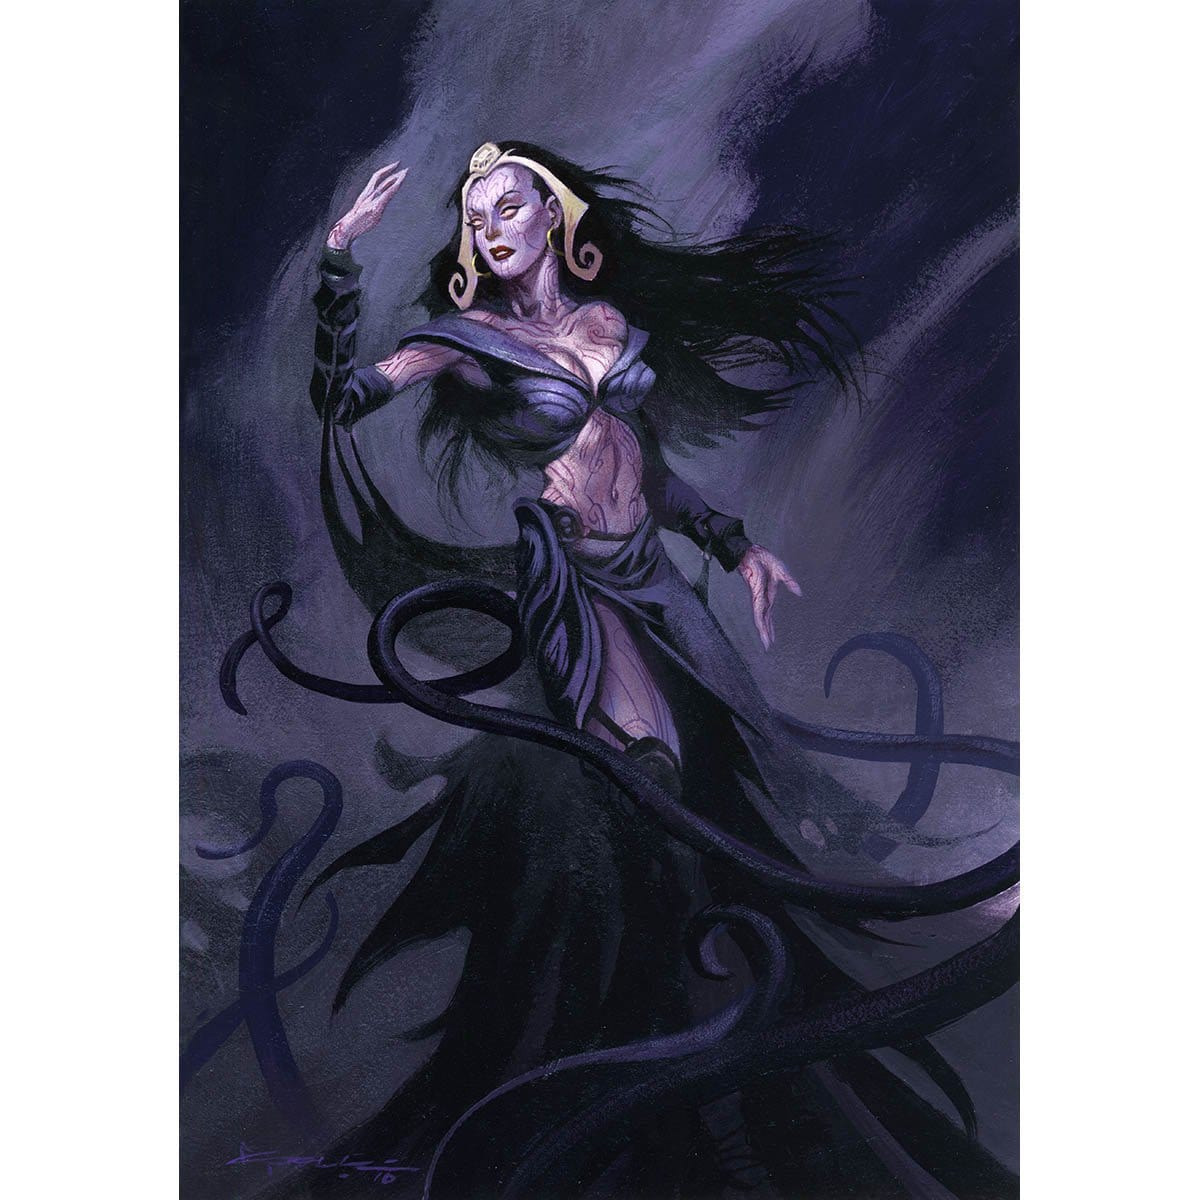 Liliana Starter Deck Print - Print - Original Magic Art - Accessories for Magic the Gathering and other card games